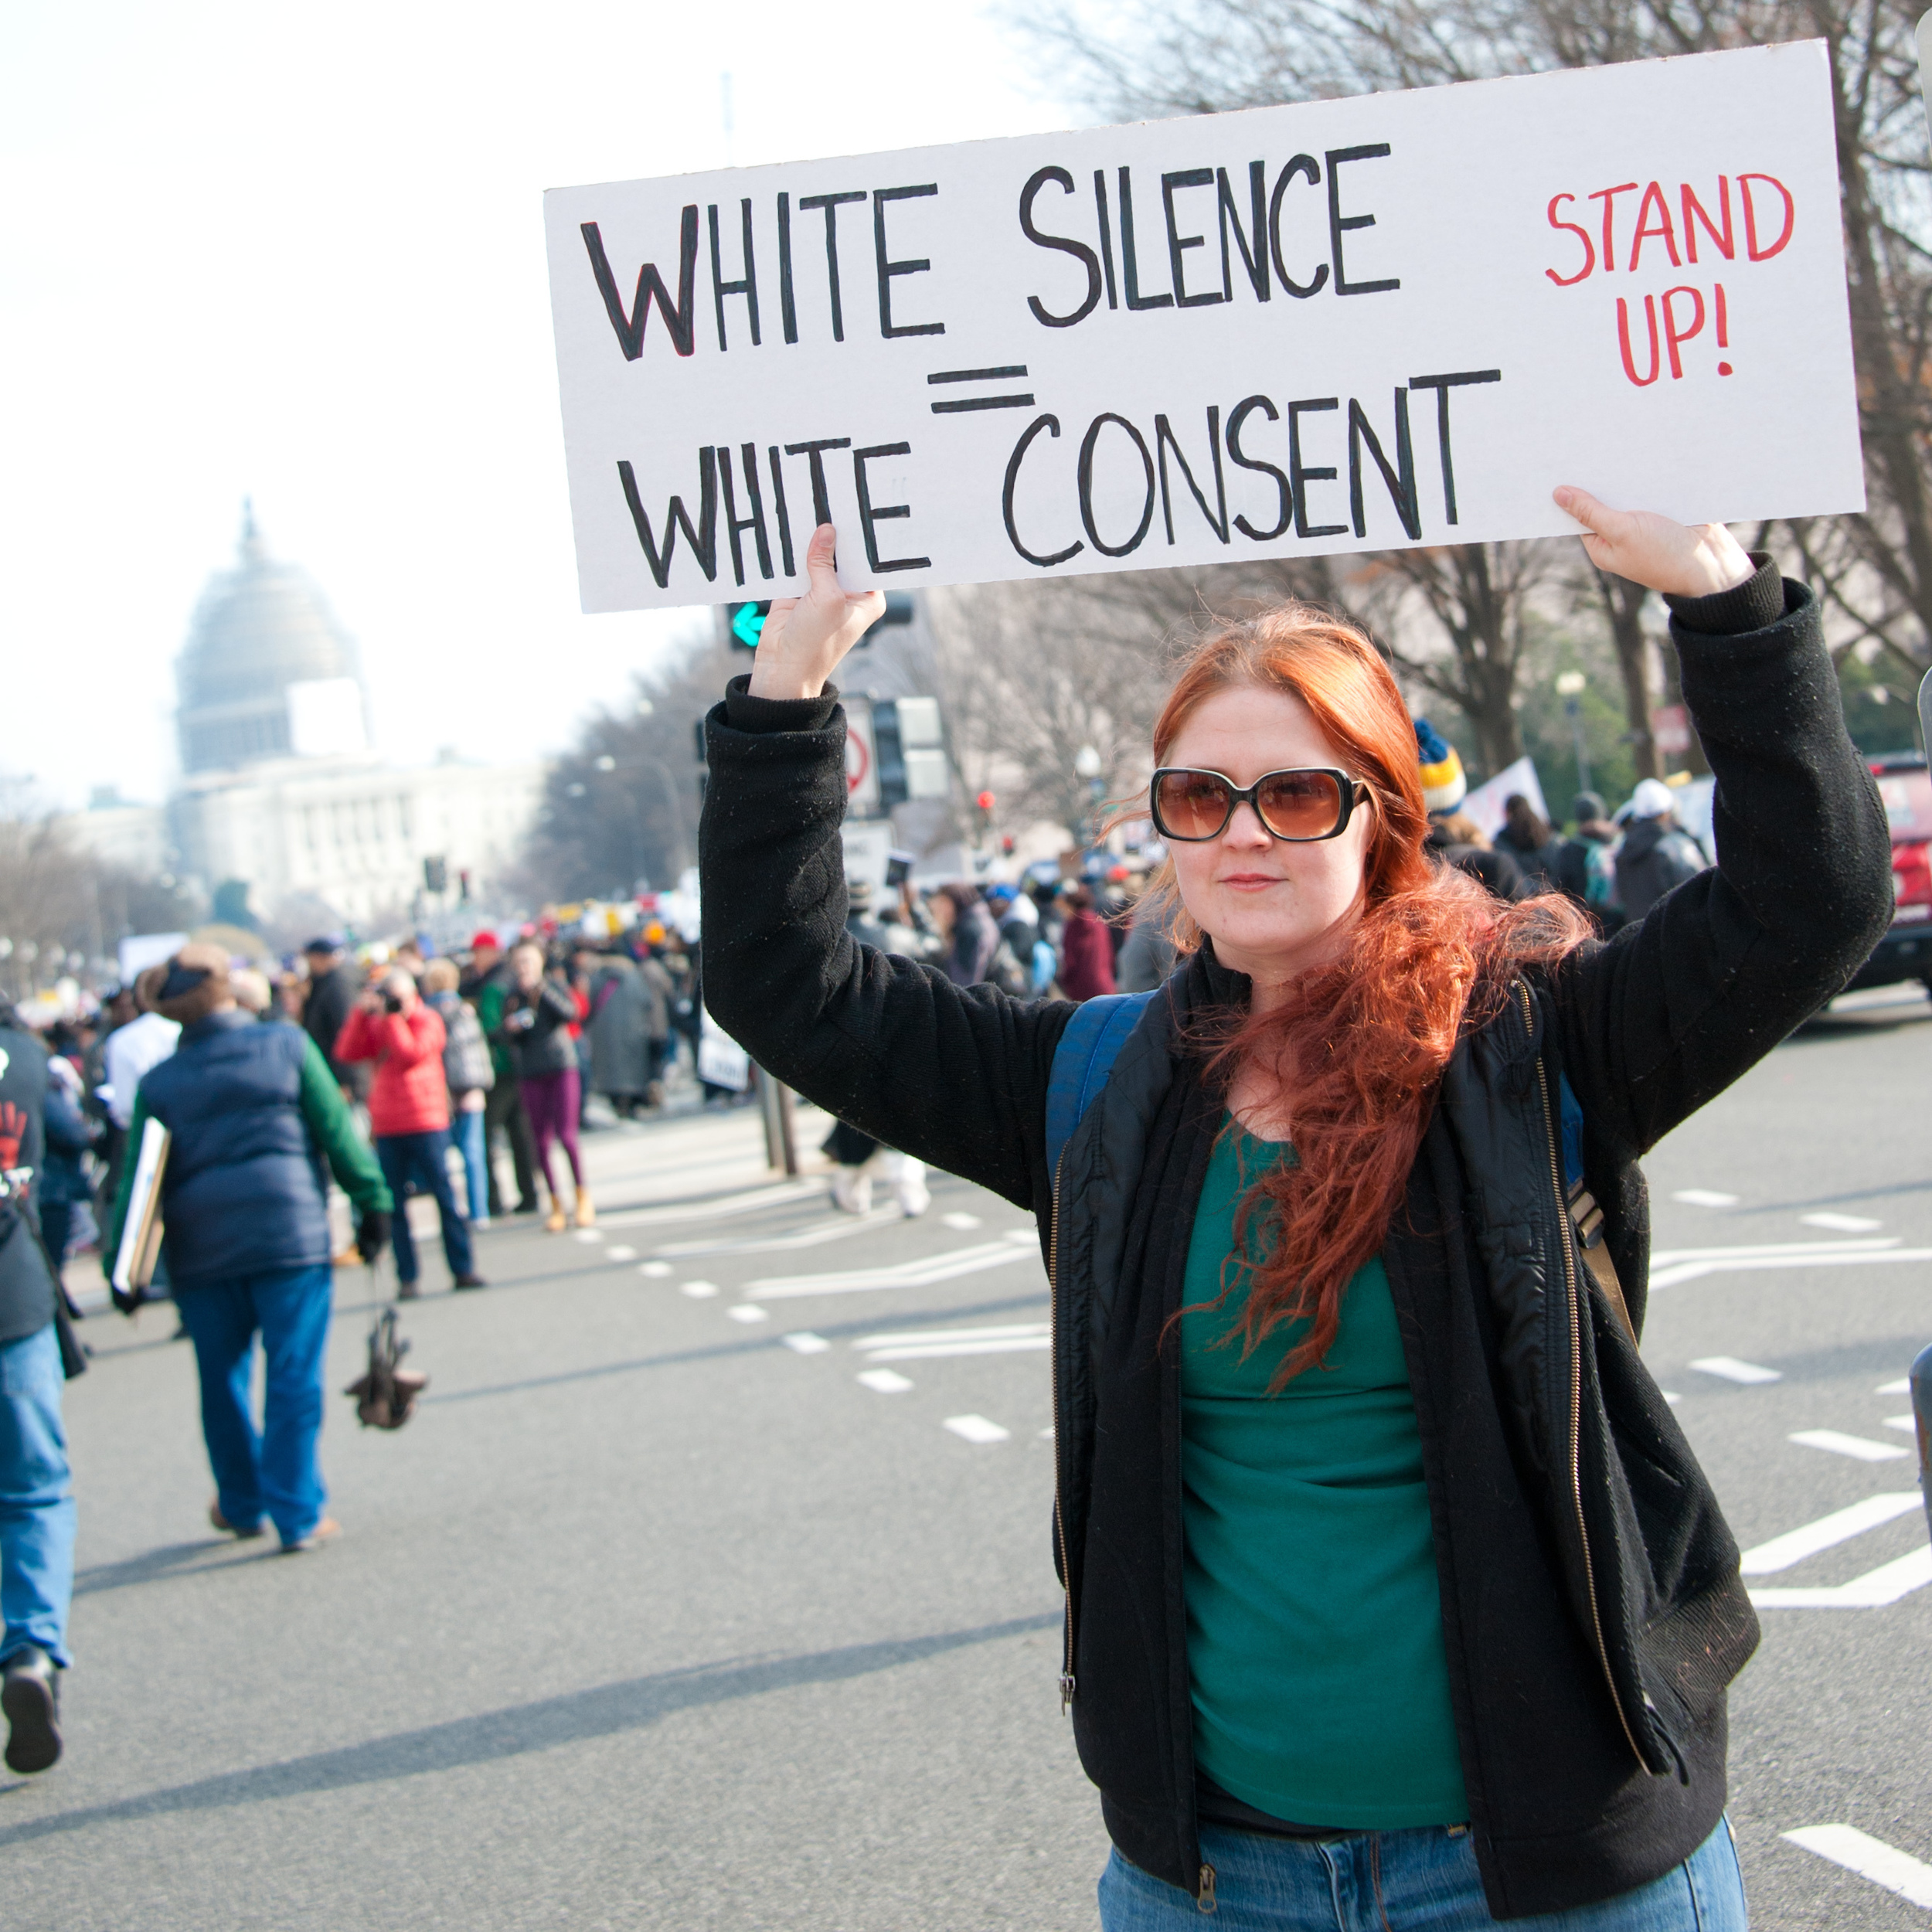 WASHINGTON - DECEMBER 13: A protester holds a sign during a march against police shootings and racism during a rally in Washington, DC on December 13, 2014.